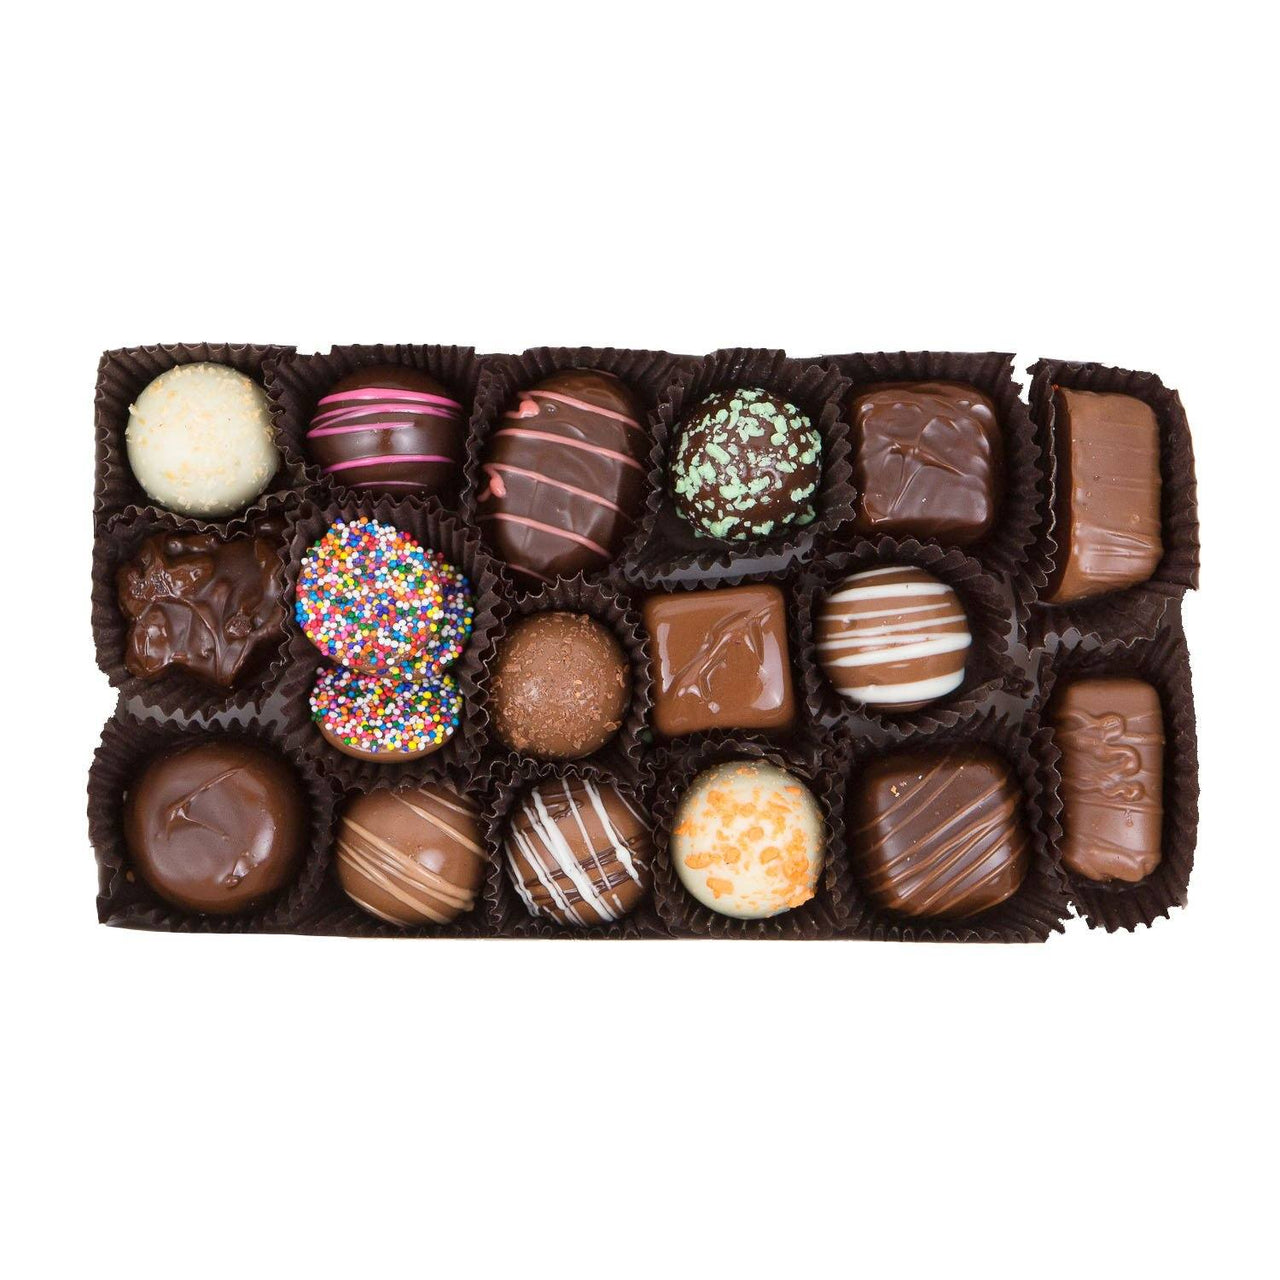 Gifts for Your Sister - Assorted Chocolate Gift Box - Jackie's Chocolate